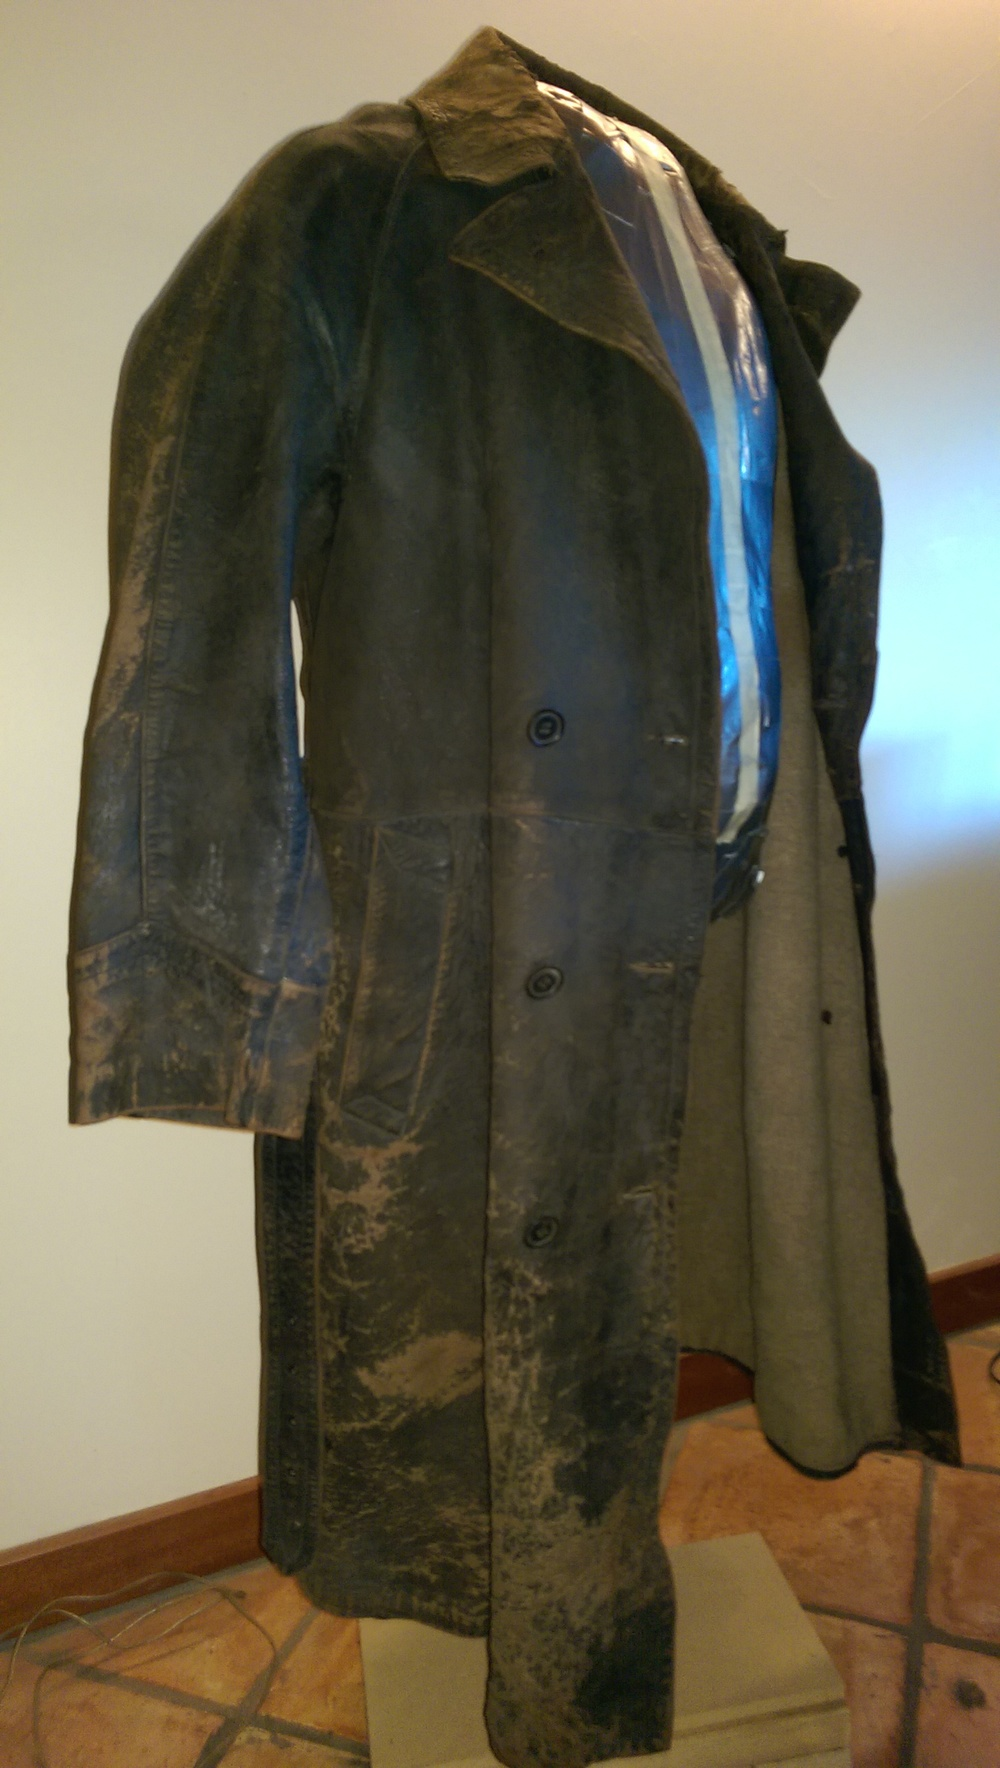 The overall look, details, and weathering are a match for the War Doctor's coat.